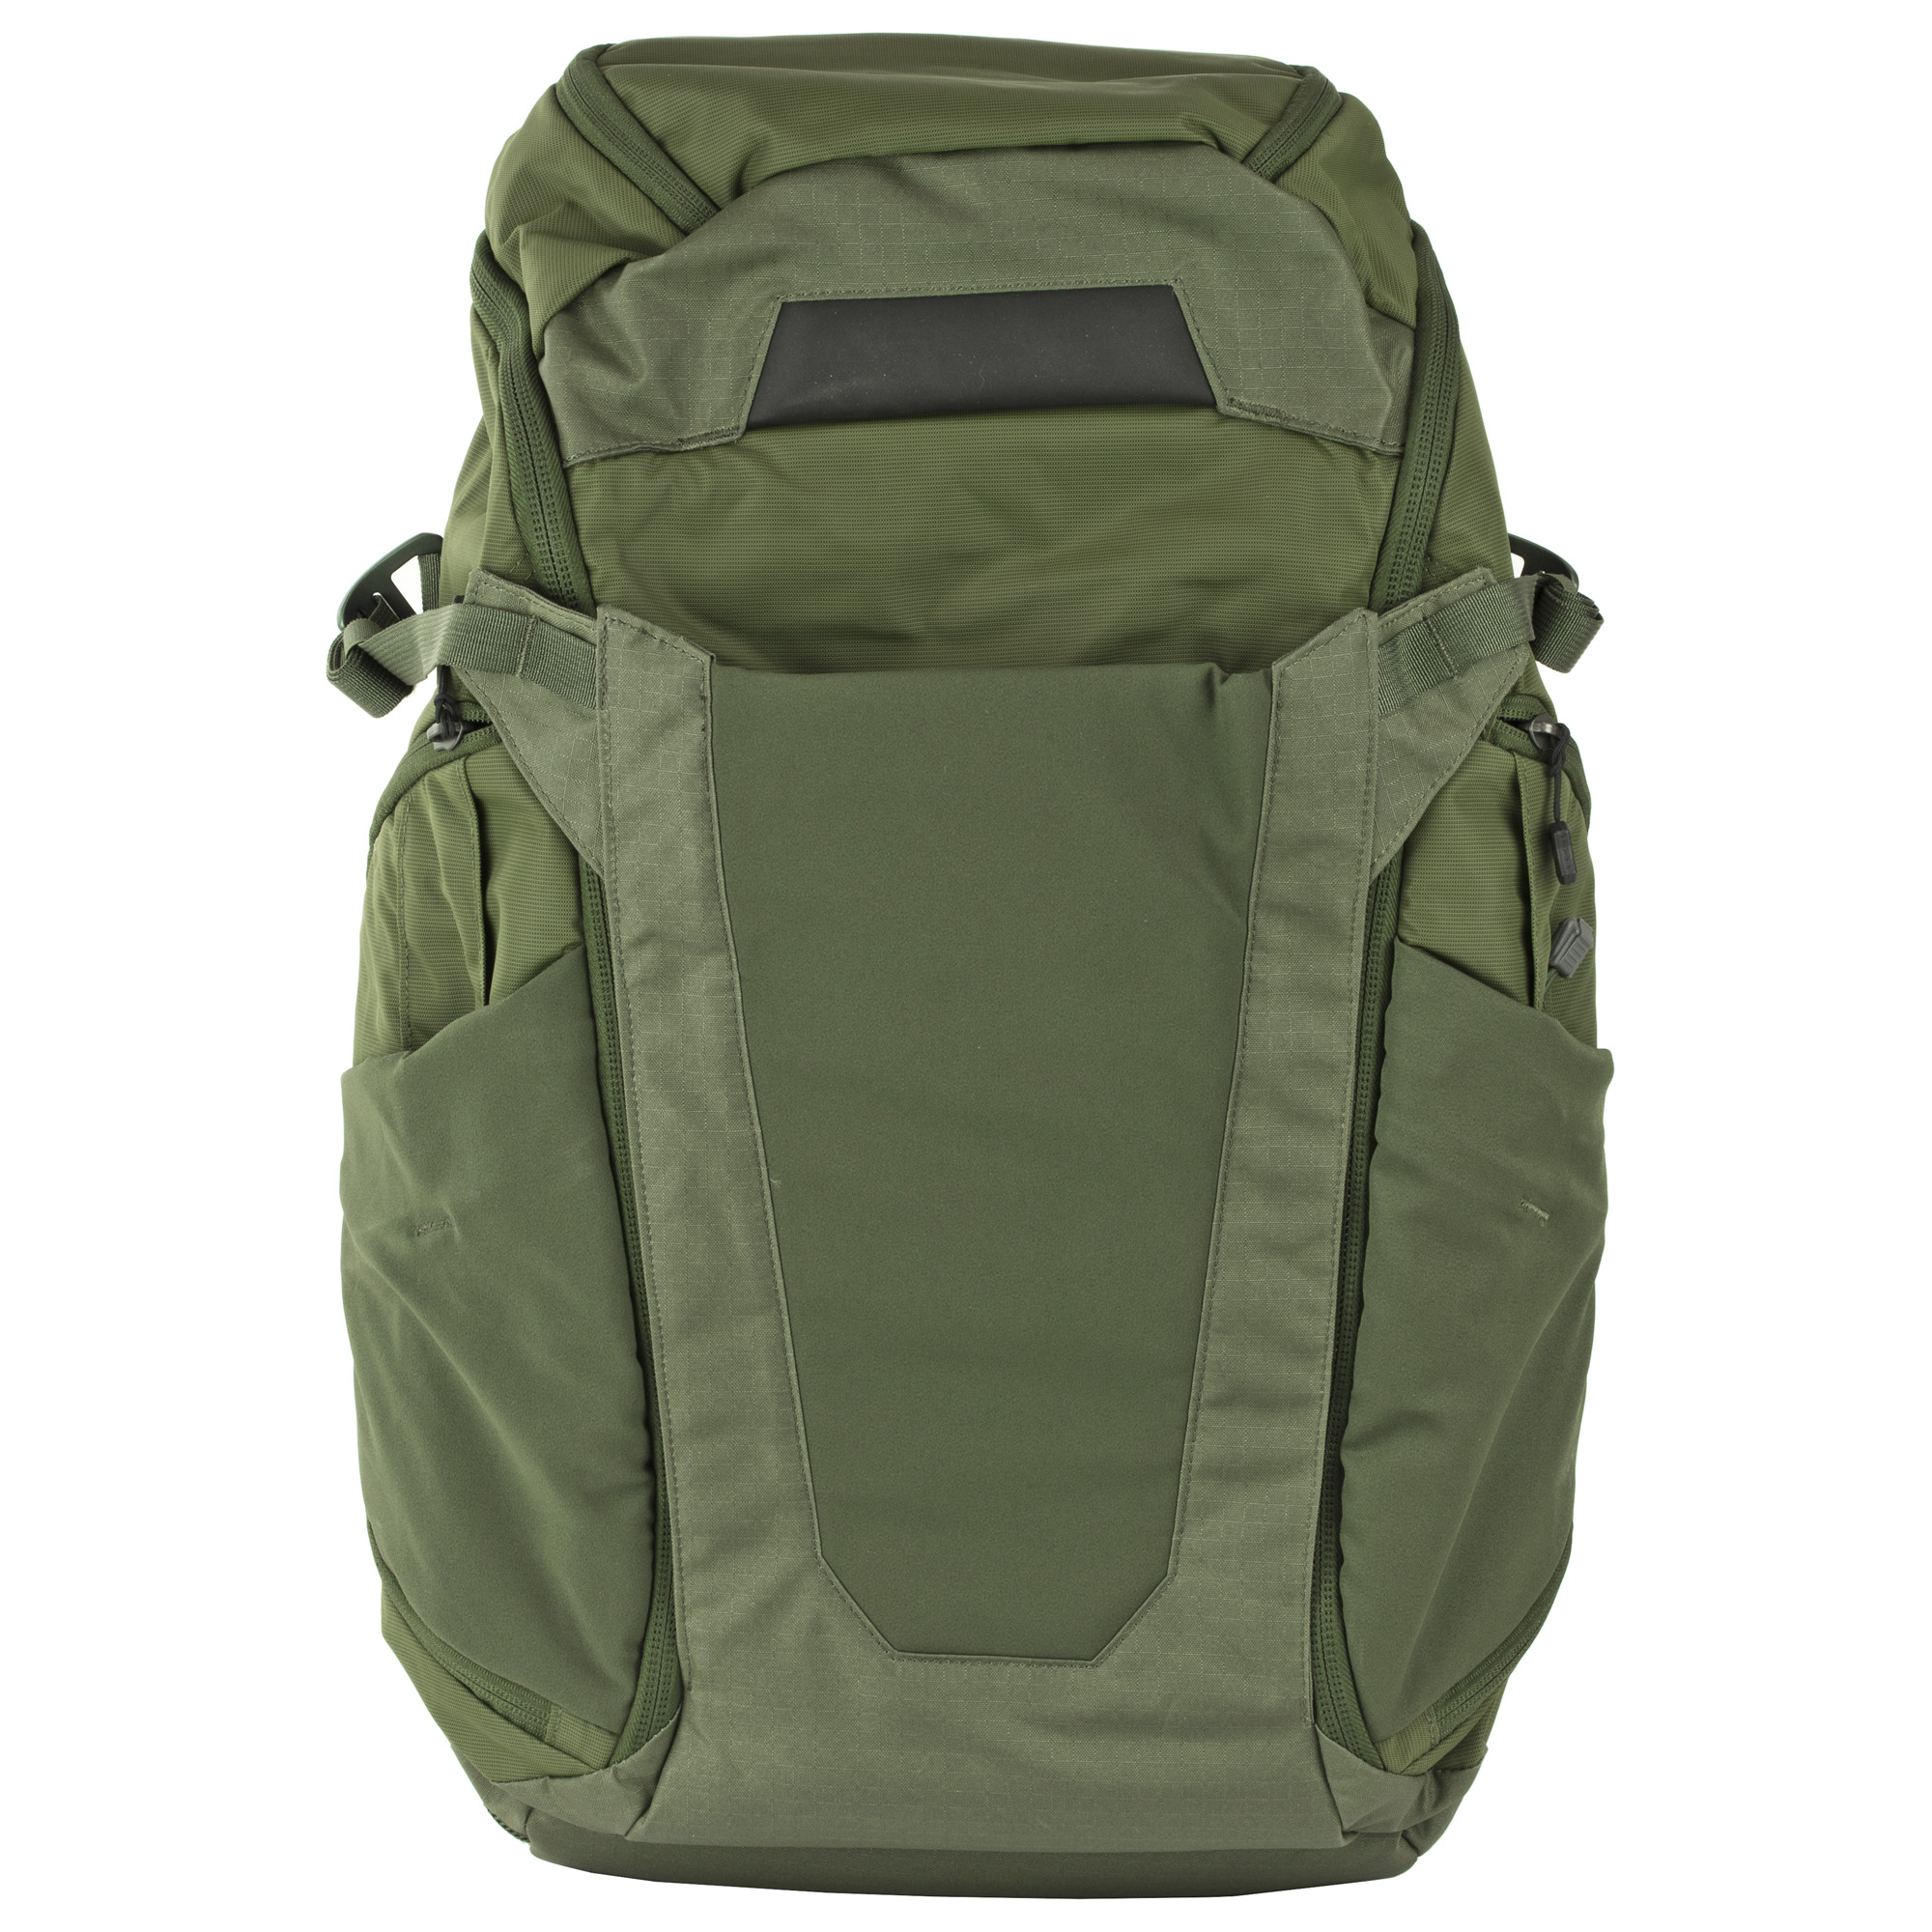 """When you can't leave anything behind"""" including your PDW rifle"""" you can rely on the roomy and robust construction and features built into the Gamut Overland pack to keep your gear at the ready. The main compartment opens 180 degrees for easy loading and gear retrieval and the convertible front flap stows quickly behind the loop-faced internal MOLLE panel to change its visual signature and for quick access to critical items organized there. Adjustable shoulder and sternum straps and waist belt help you manage the load in comfort while maintaining control and stability."""